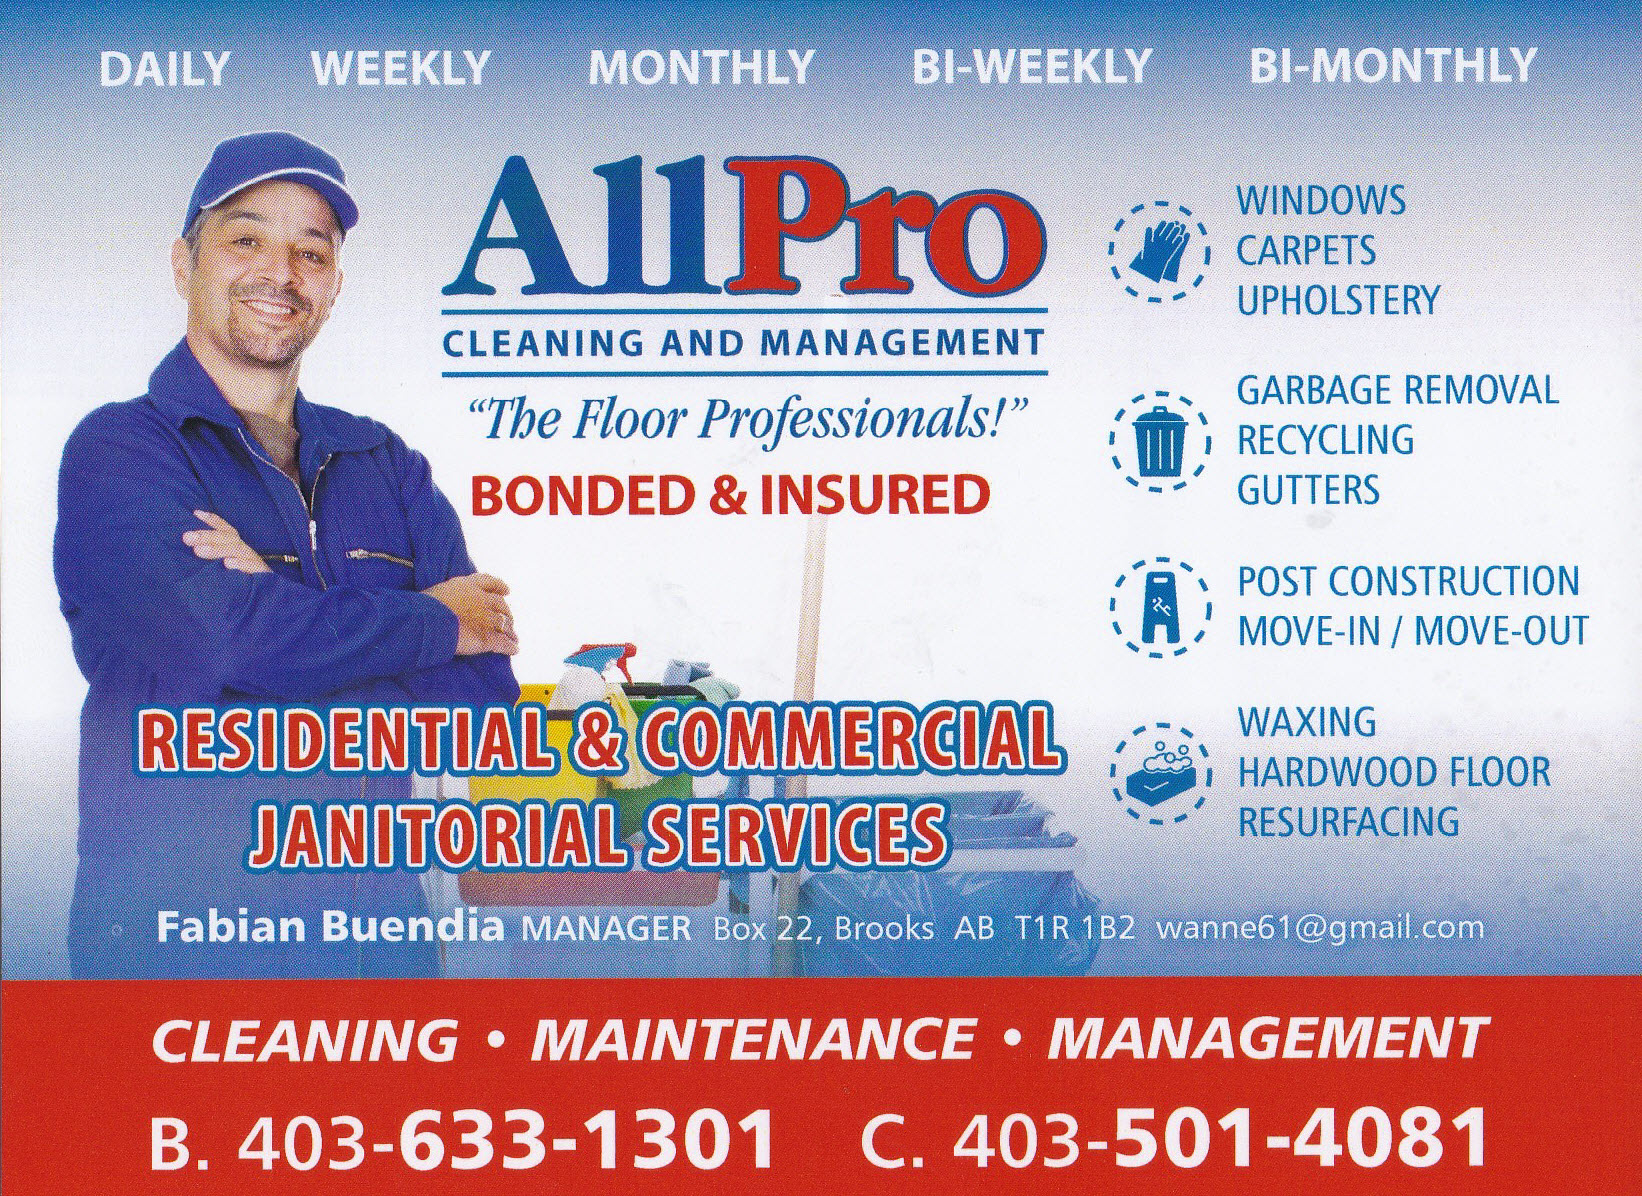 All Pro Cleaning & Management